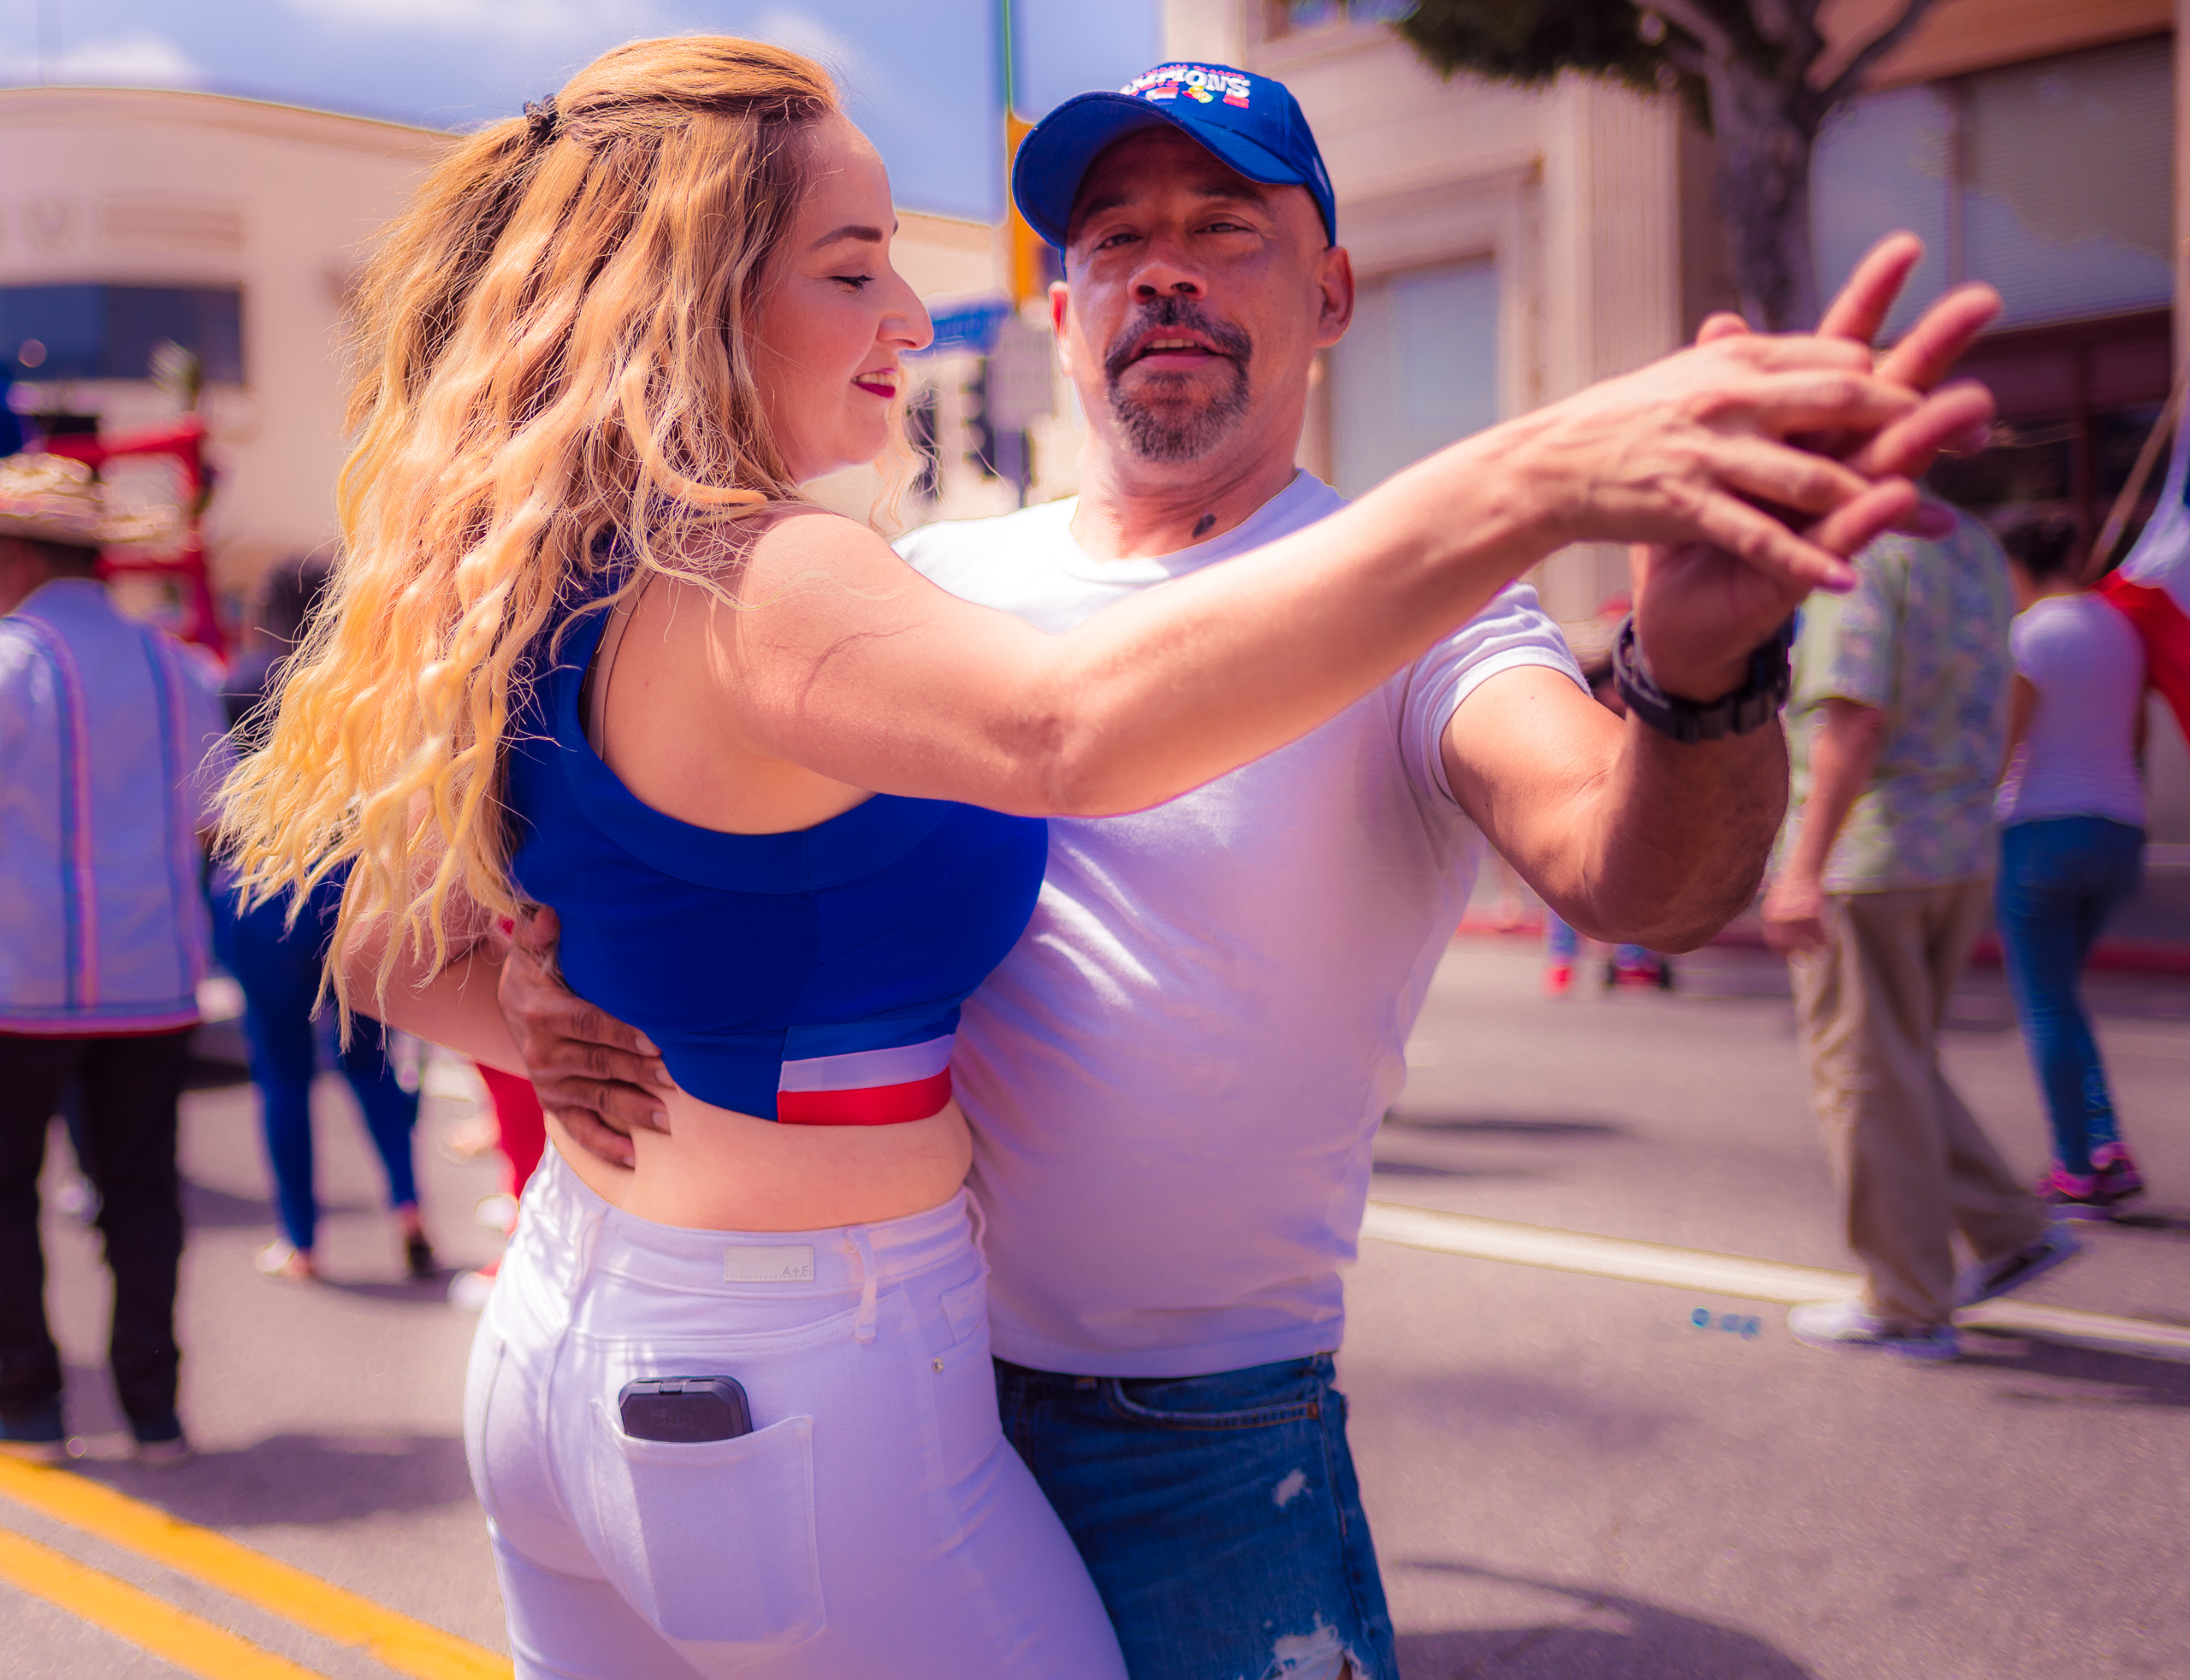 a woman in a blue crop top with a Dominican Republic flag-themed trim, and white pants, dances with a main in t-shirt and jeans on Hollywood Blve.